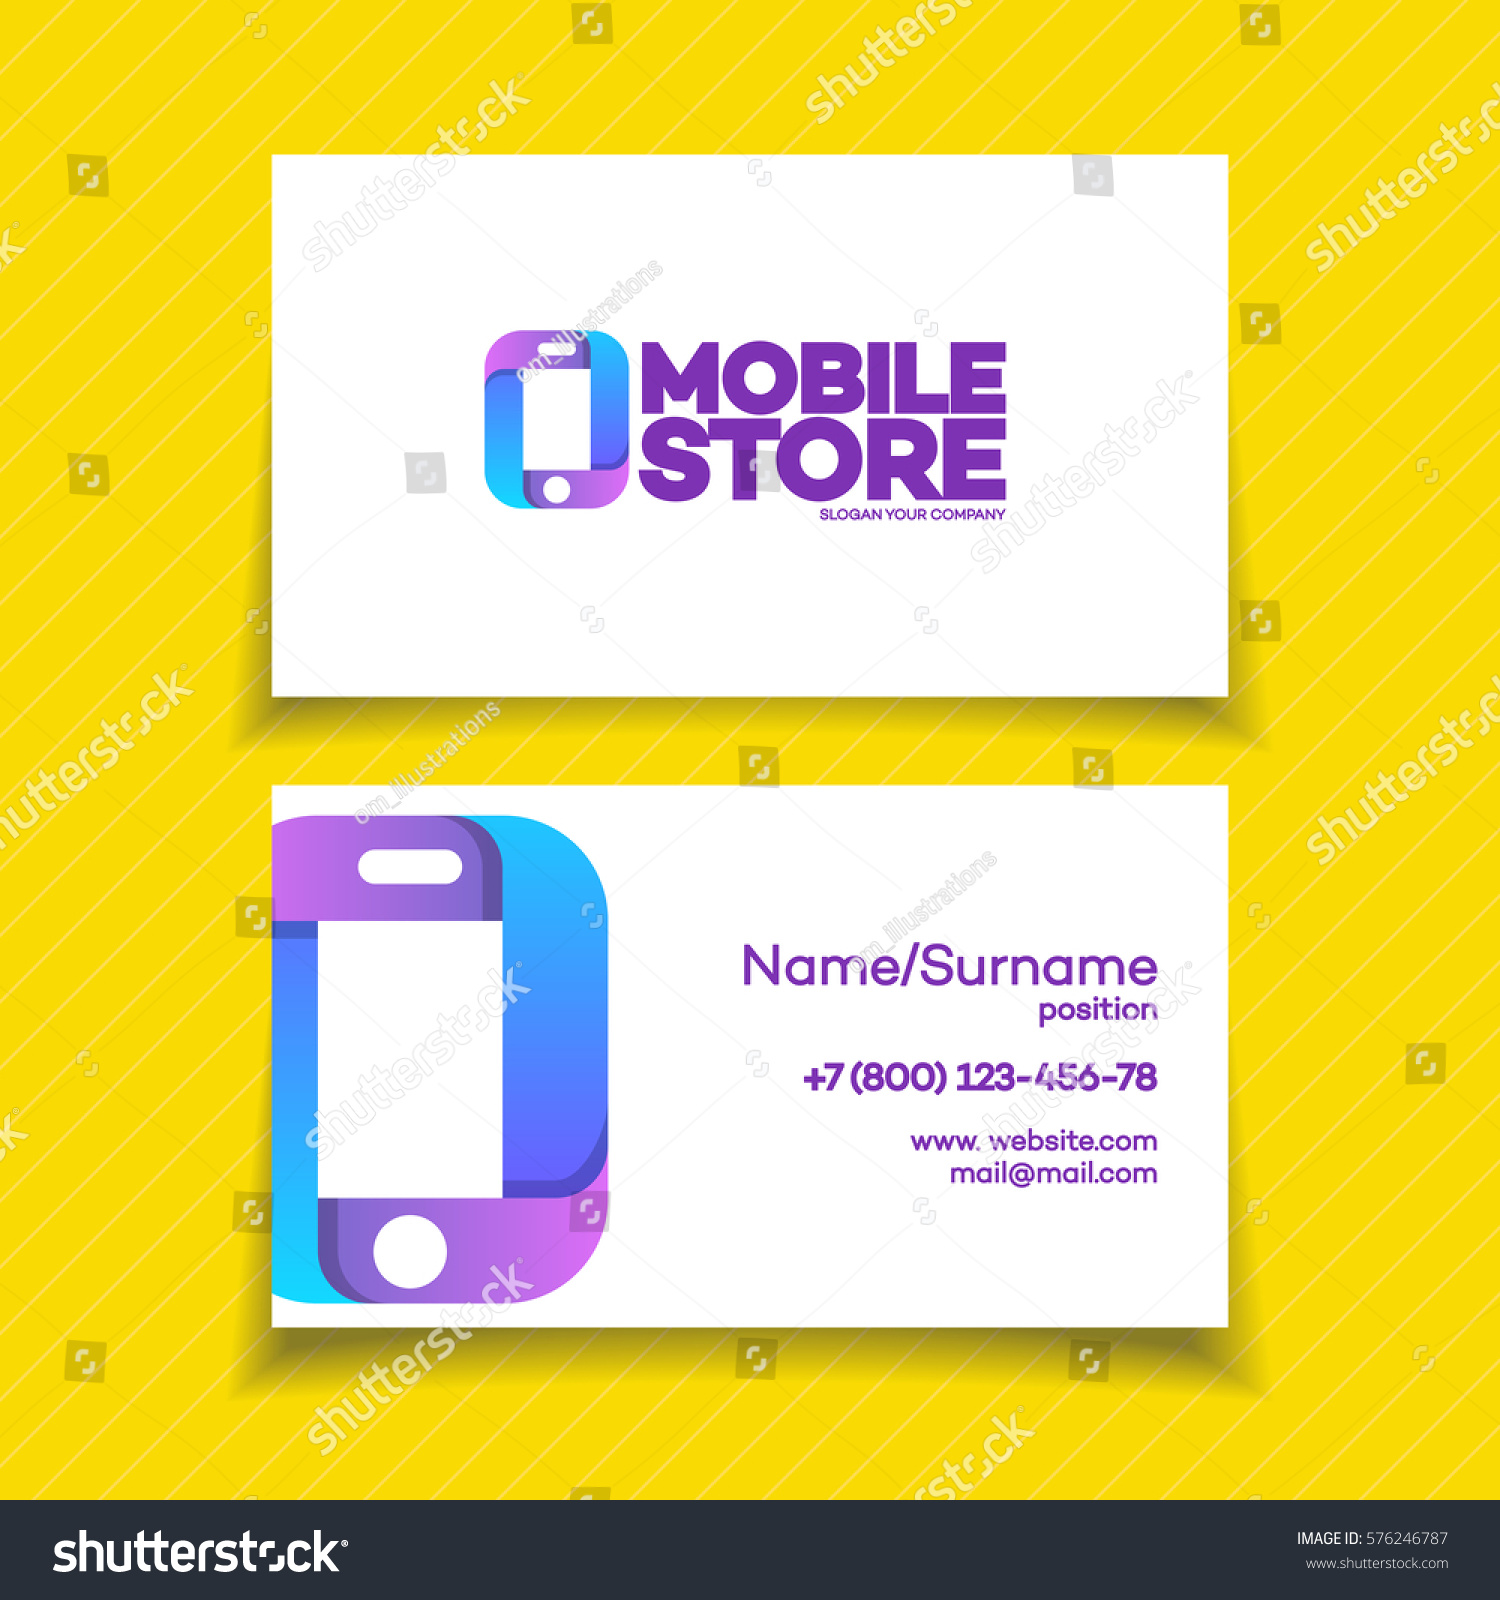 Mobile Store Business Card Design Template Stock Vector (2018 ...